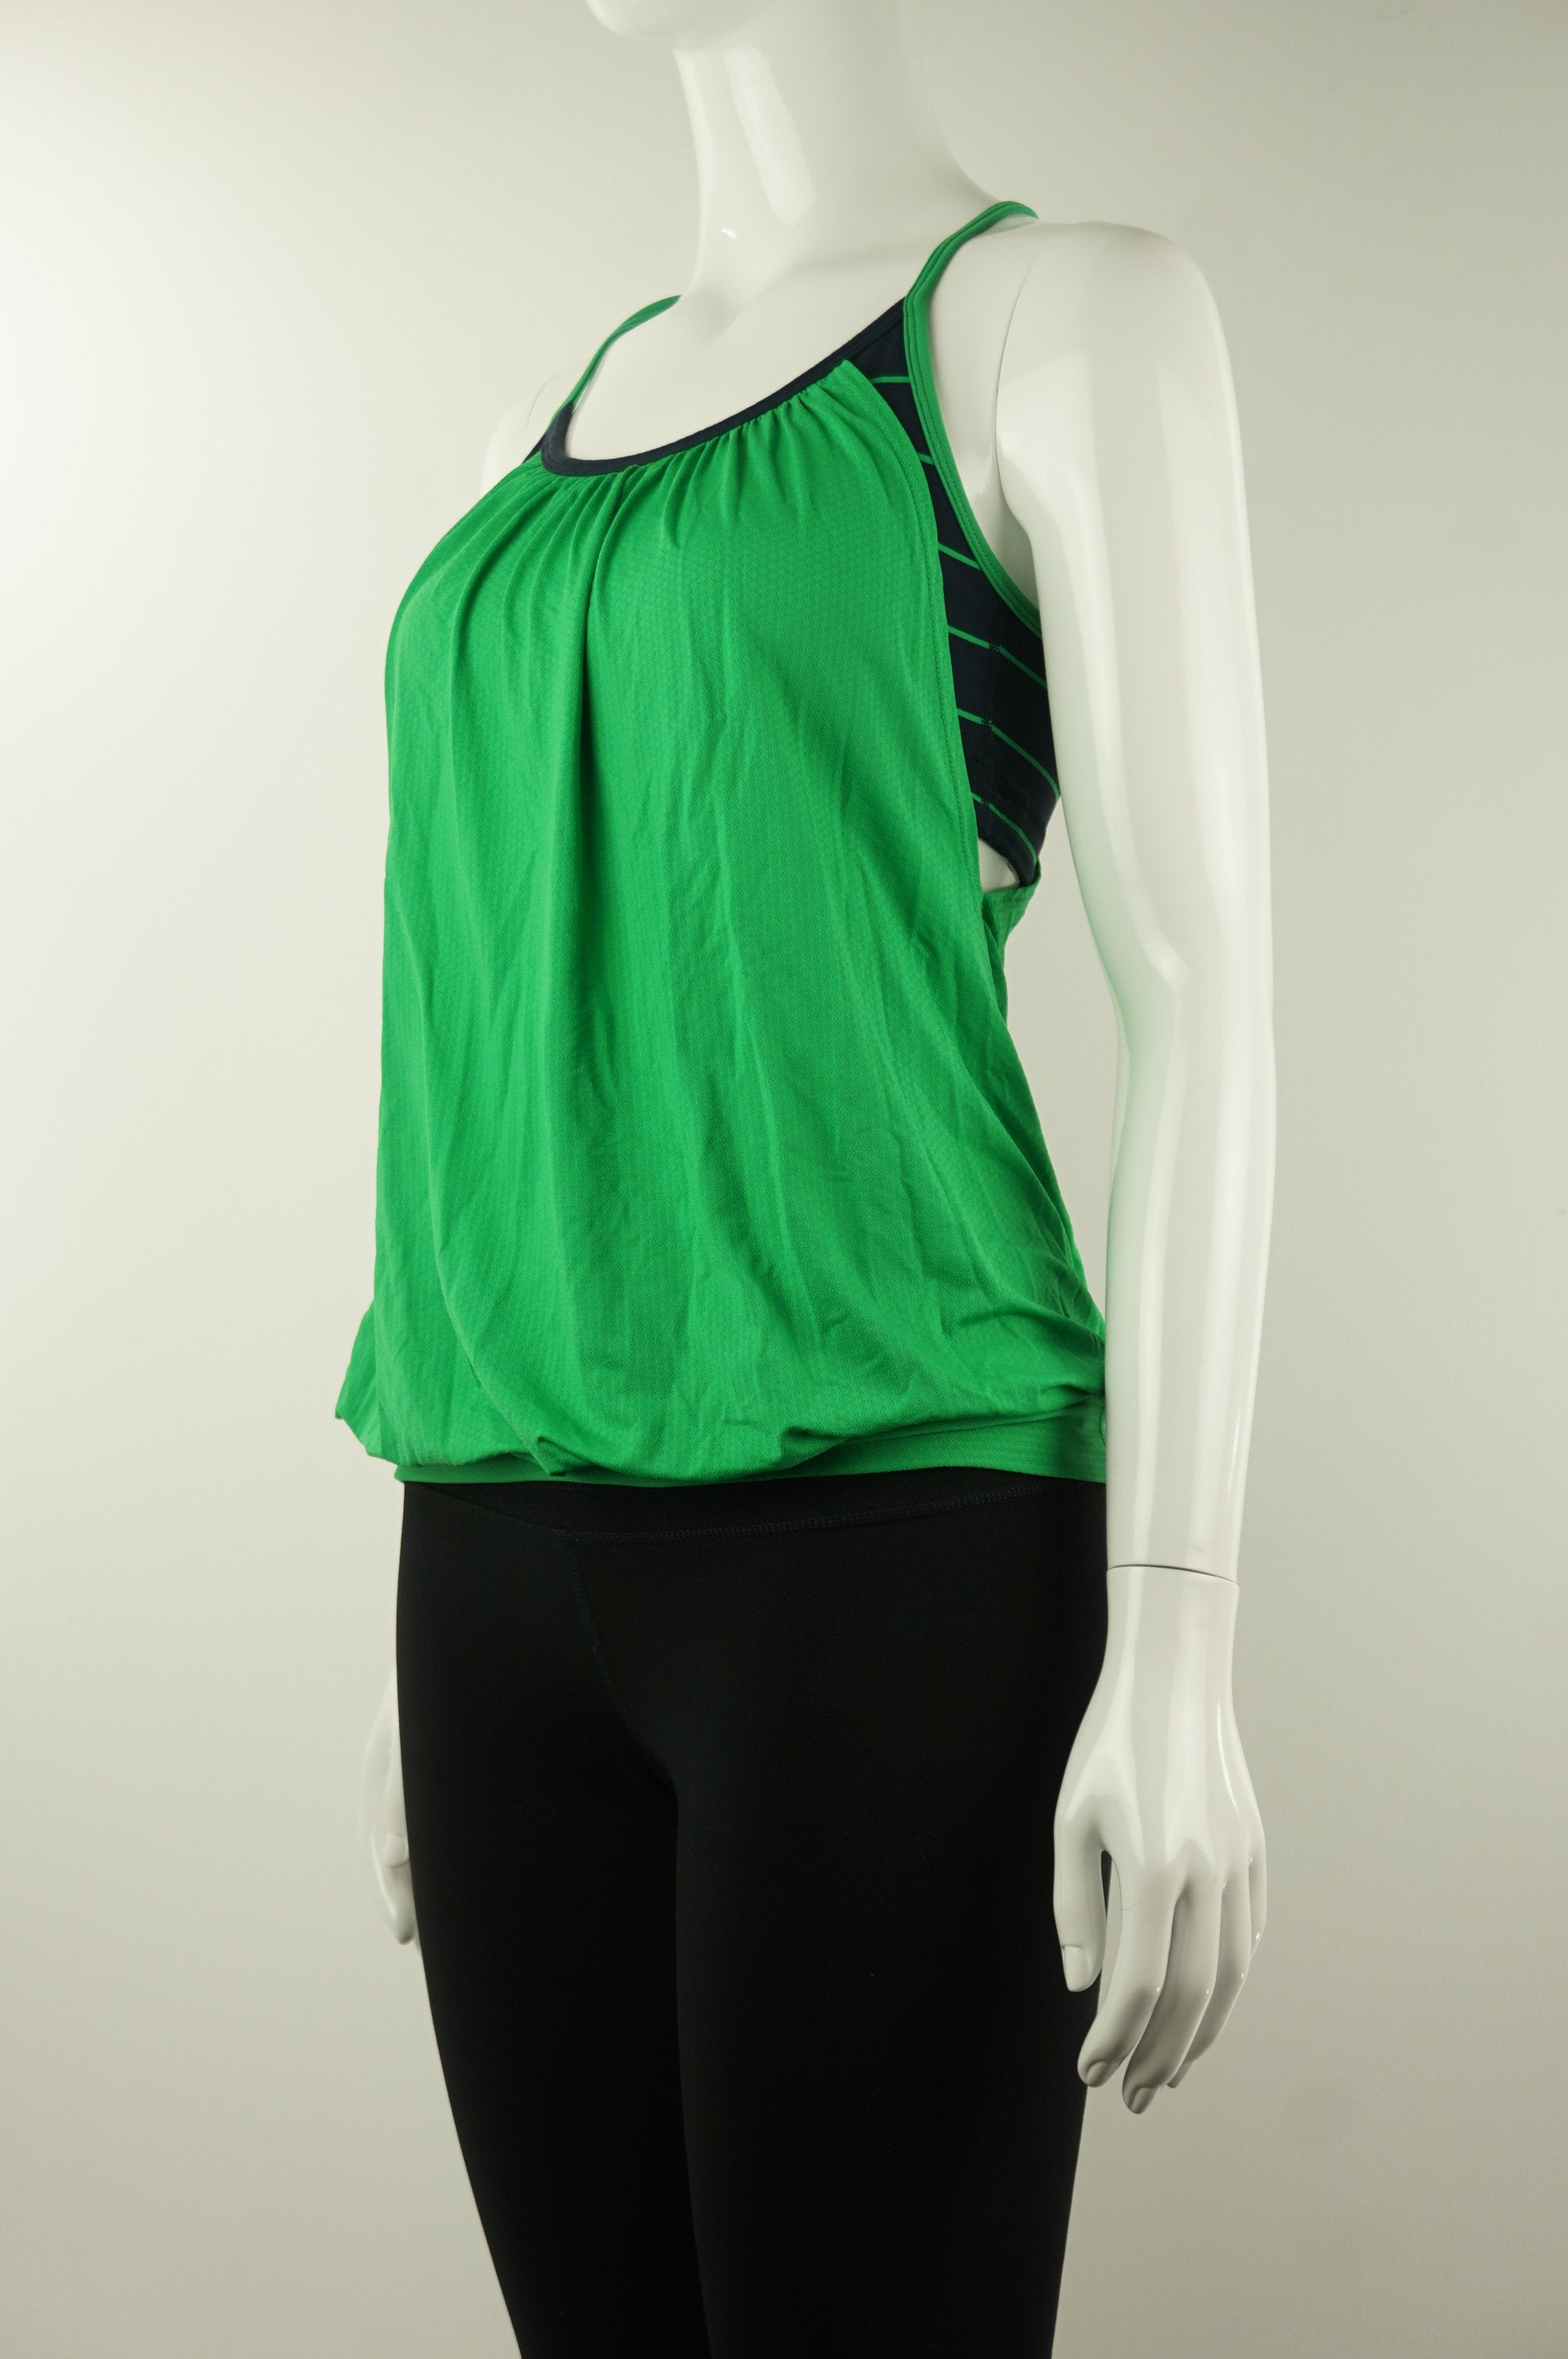 Lululemon Tank Top with Built-in Bra, Bright tank top with built-in bra for all your athletic needs. , Green, Blue, Cotton and Lyocel, women's Activewear, Tops, women's Green, Blue Activewear, Tops, Lululemon women's Activewear, Tops, women's tank top, lululemon women's athletic top